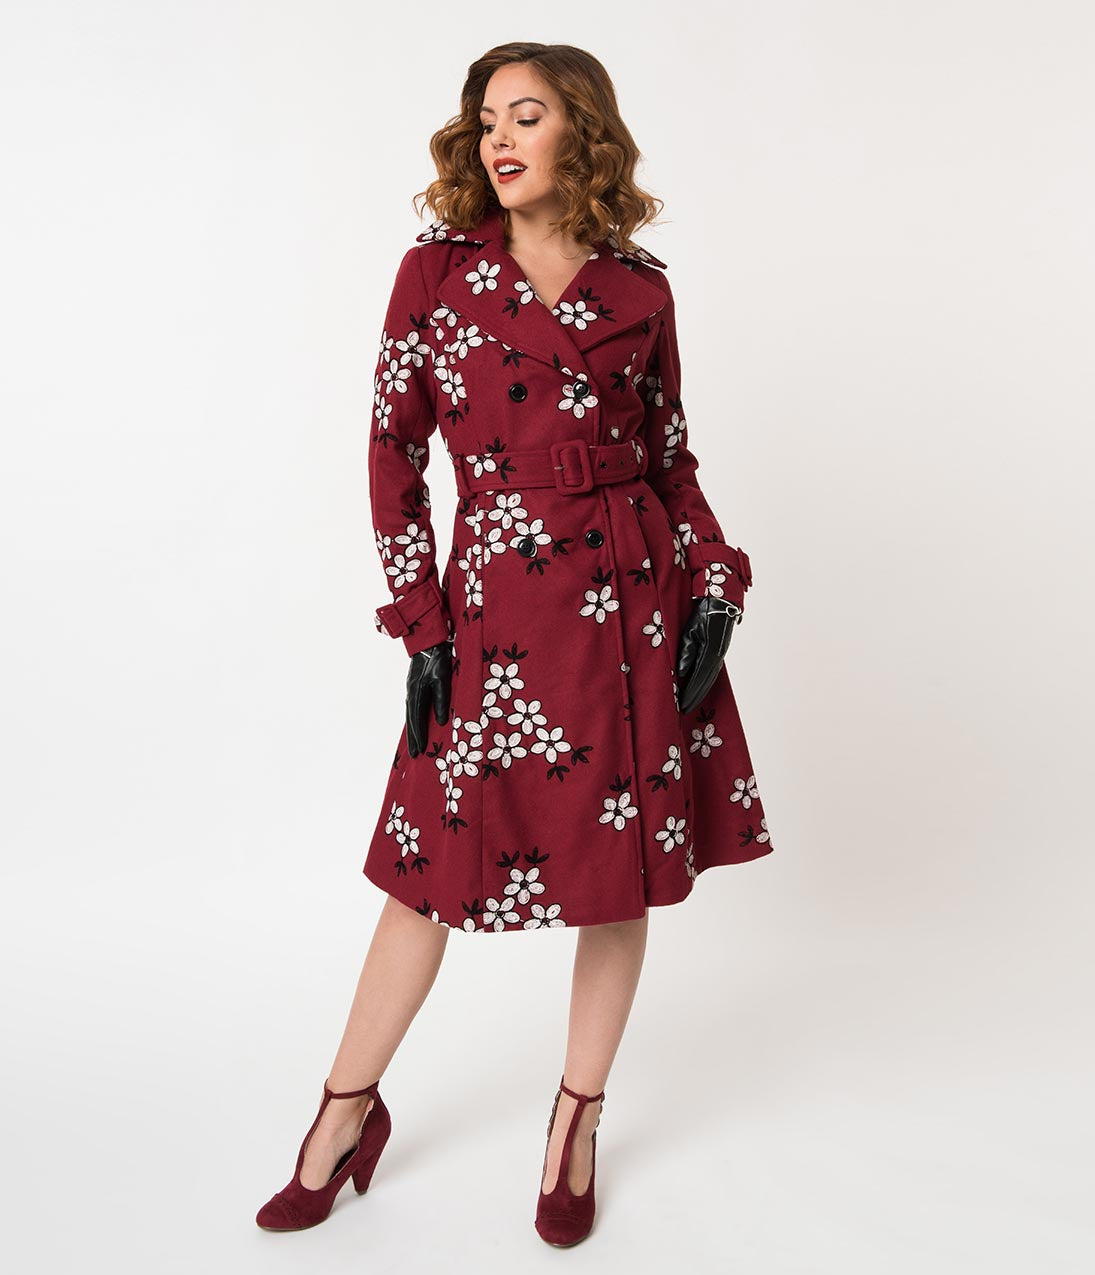 1950s Jackets, Coats, Bolero | Swing, Pin Up, Rockabilly Voodoo Vixen Burgundy  Embroidered White Florals Wool Marjorie Coat $94.00 AT vintagedancer.com